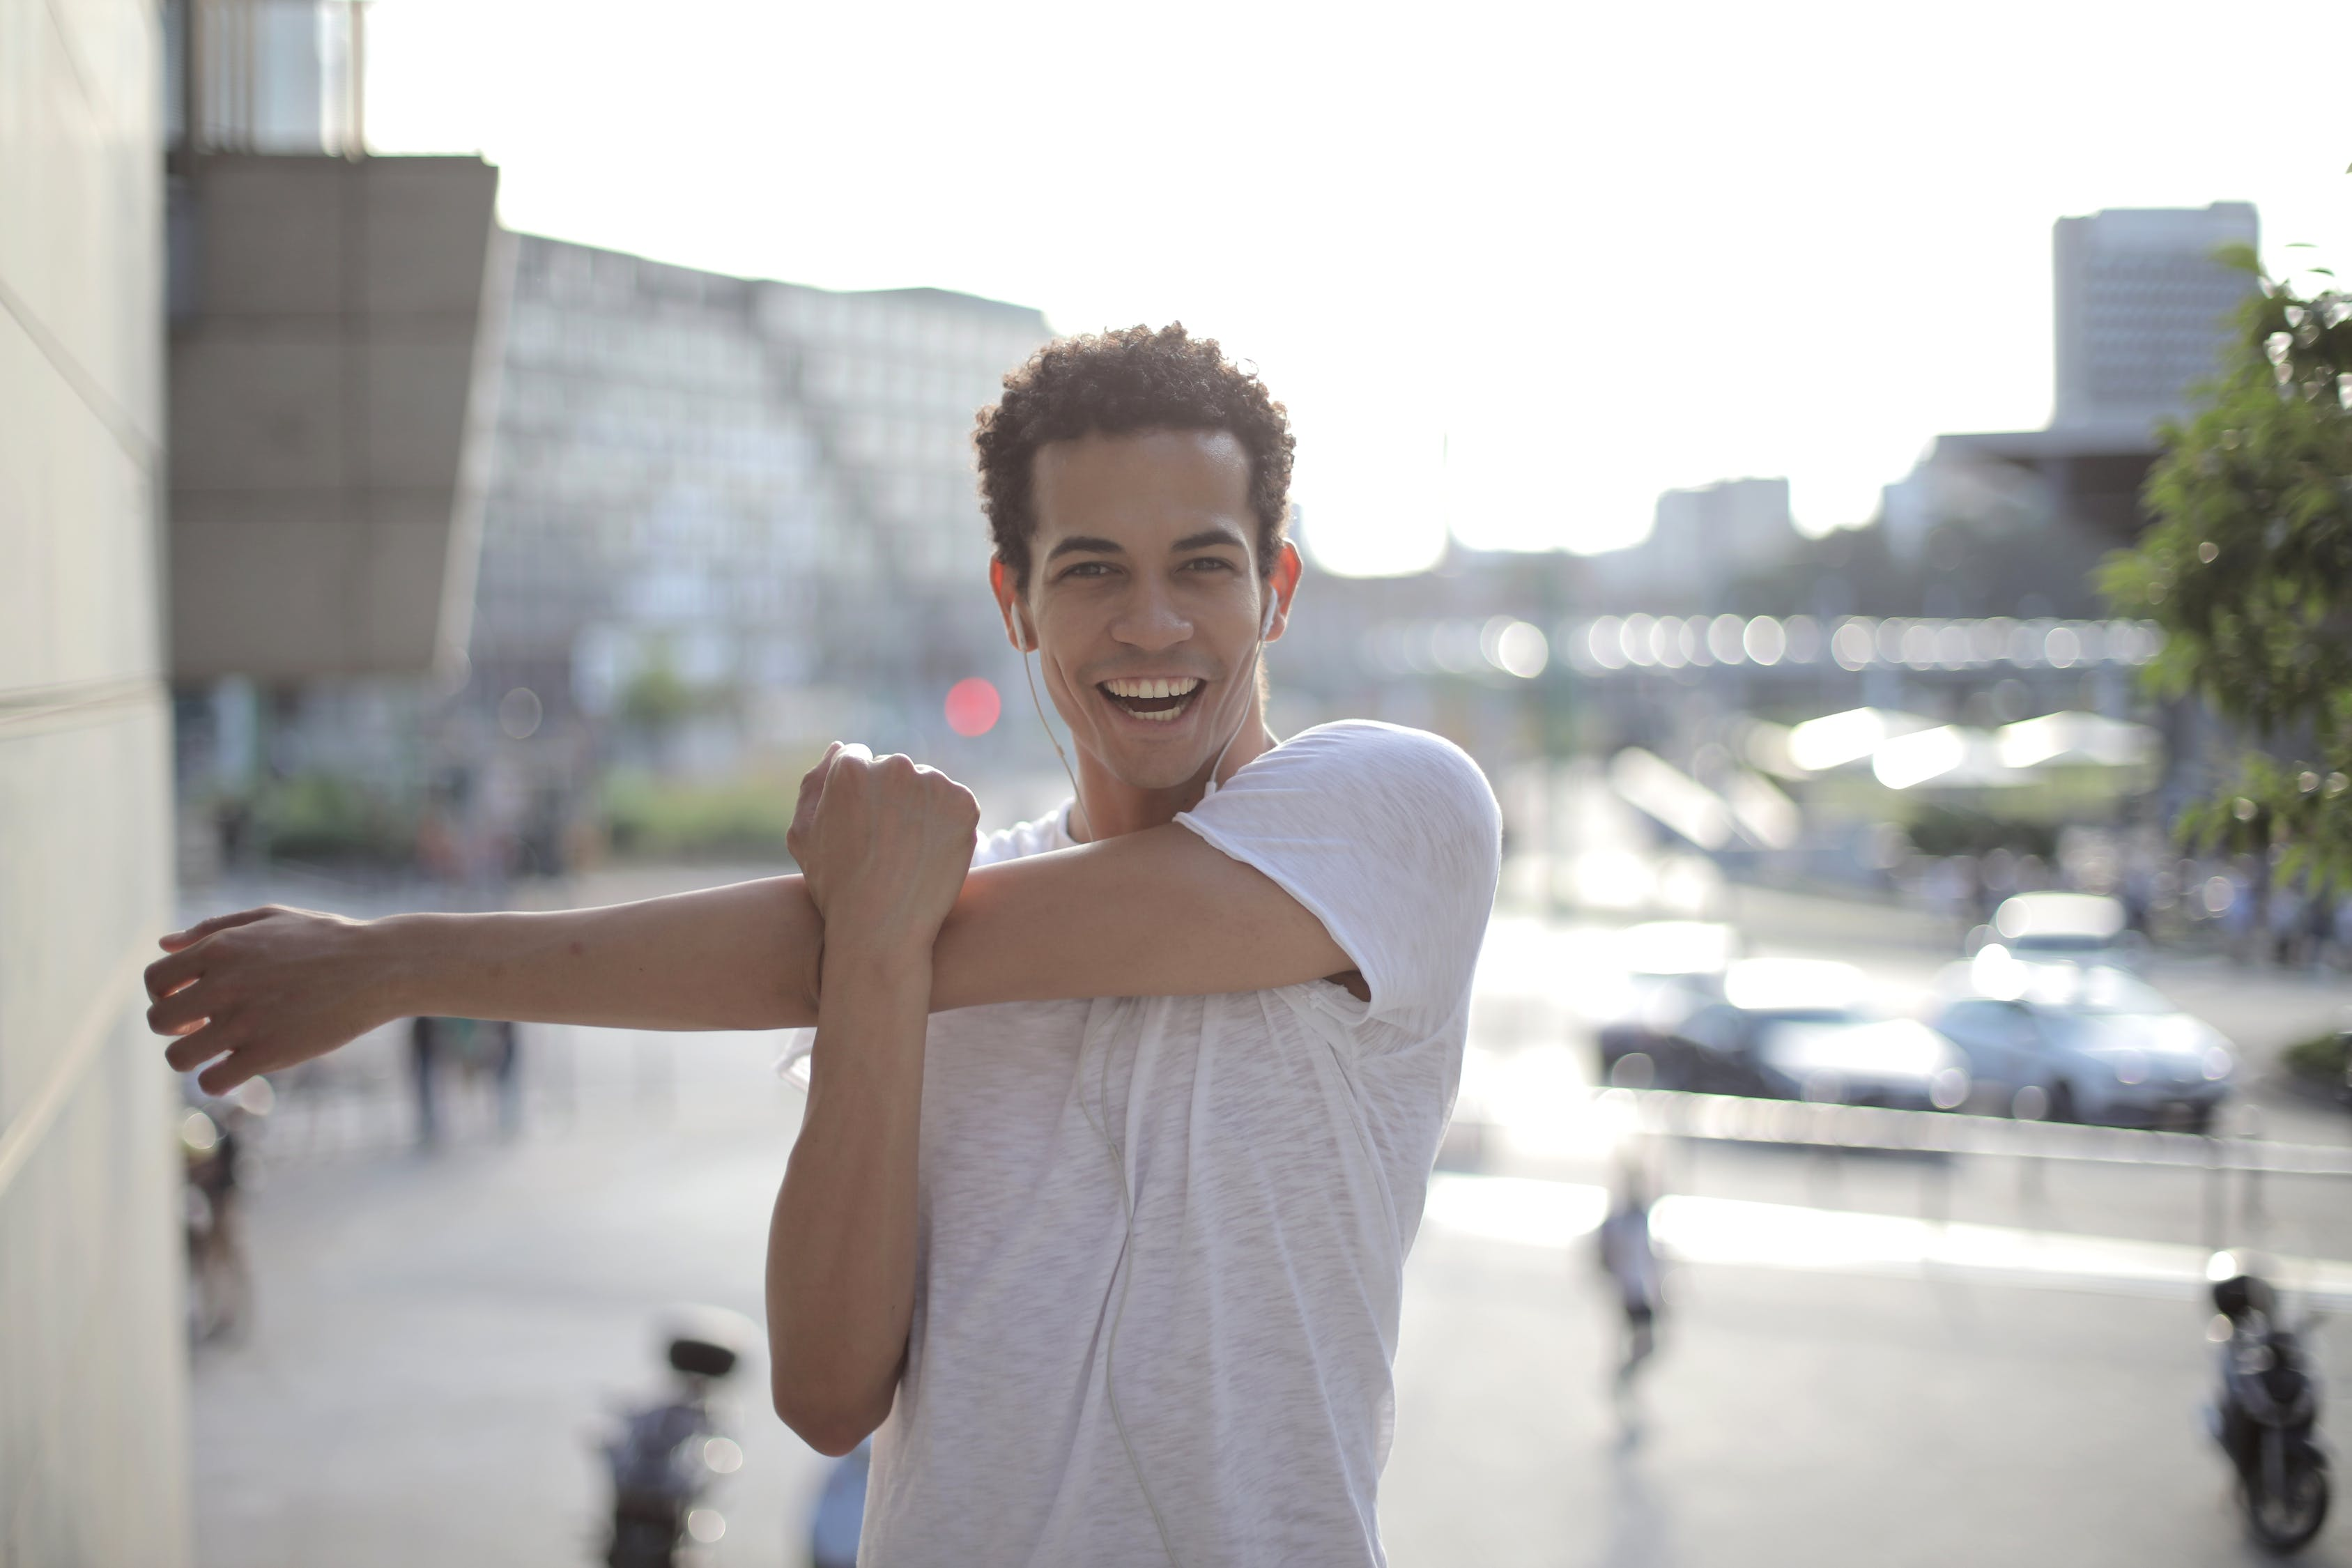 Cheerful African American male athlete with mouth opened in earphones and sports clothes smiling at camera while stretching arms and listening to music with pleasure on street against gray exterior of contemporary buildings